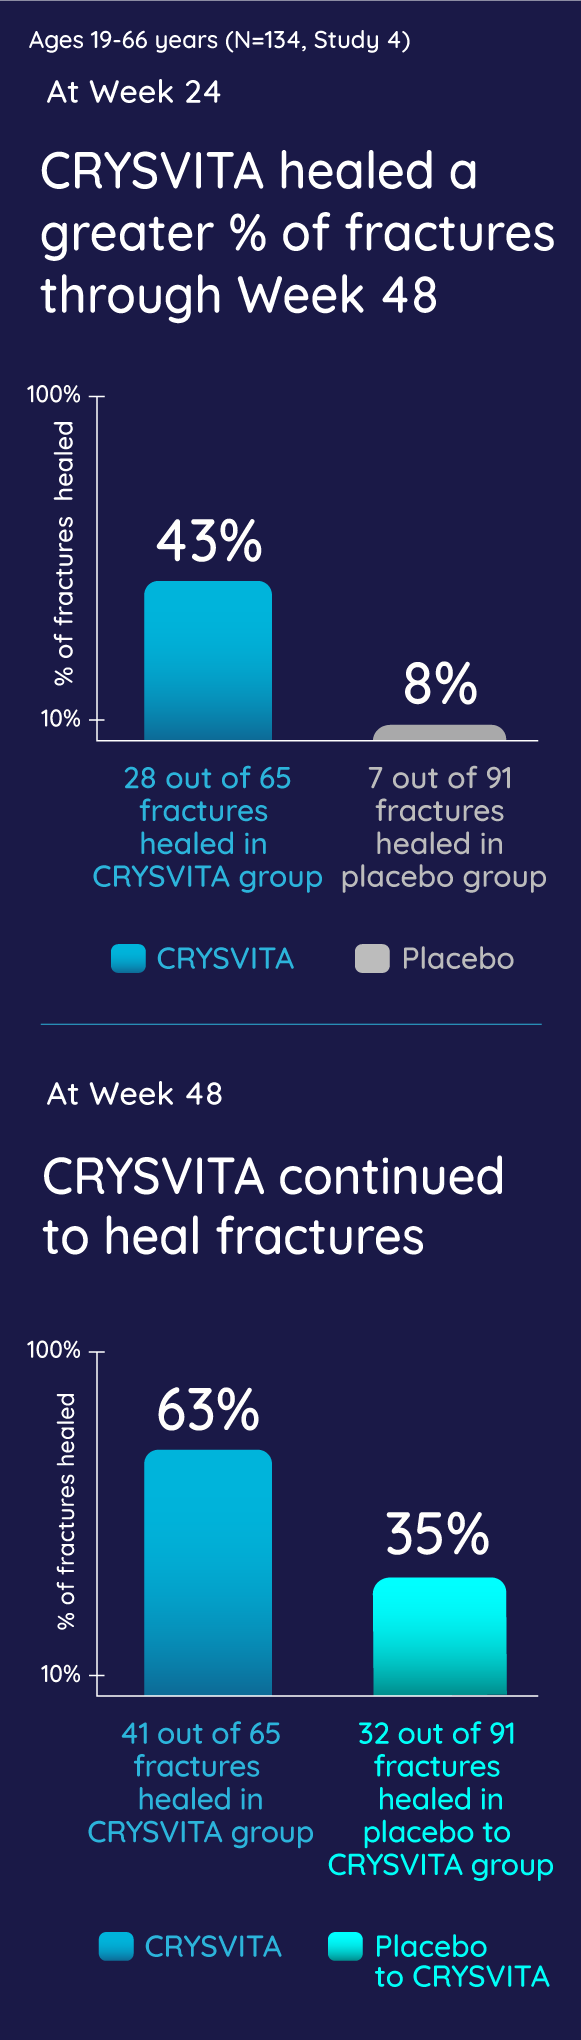 CRYSVITA helped heal a greater percentage of fractures than placebo